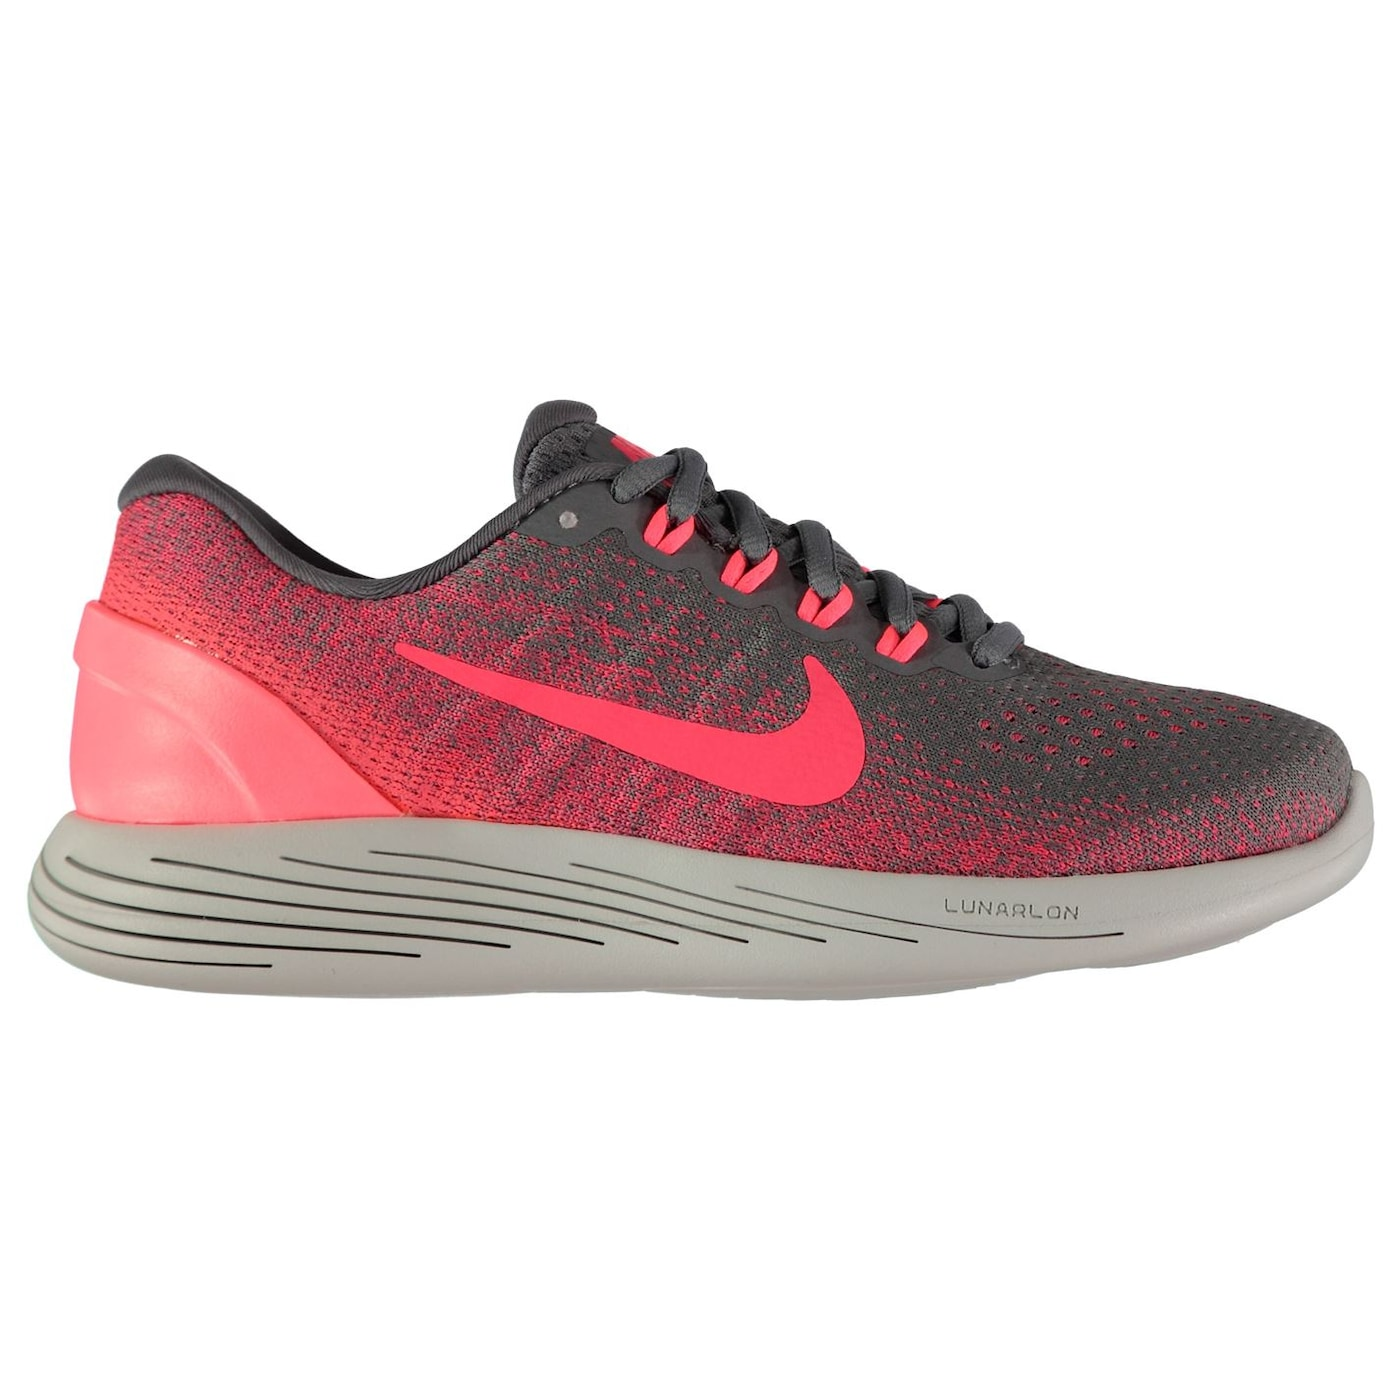 Nike Lunar Glide 9 Ladies Running Shoes